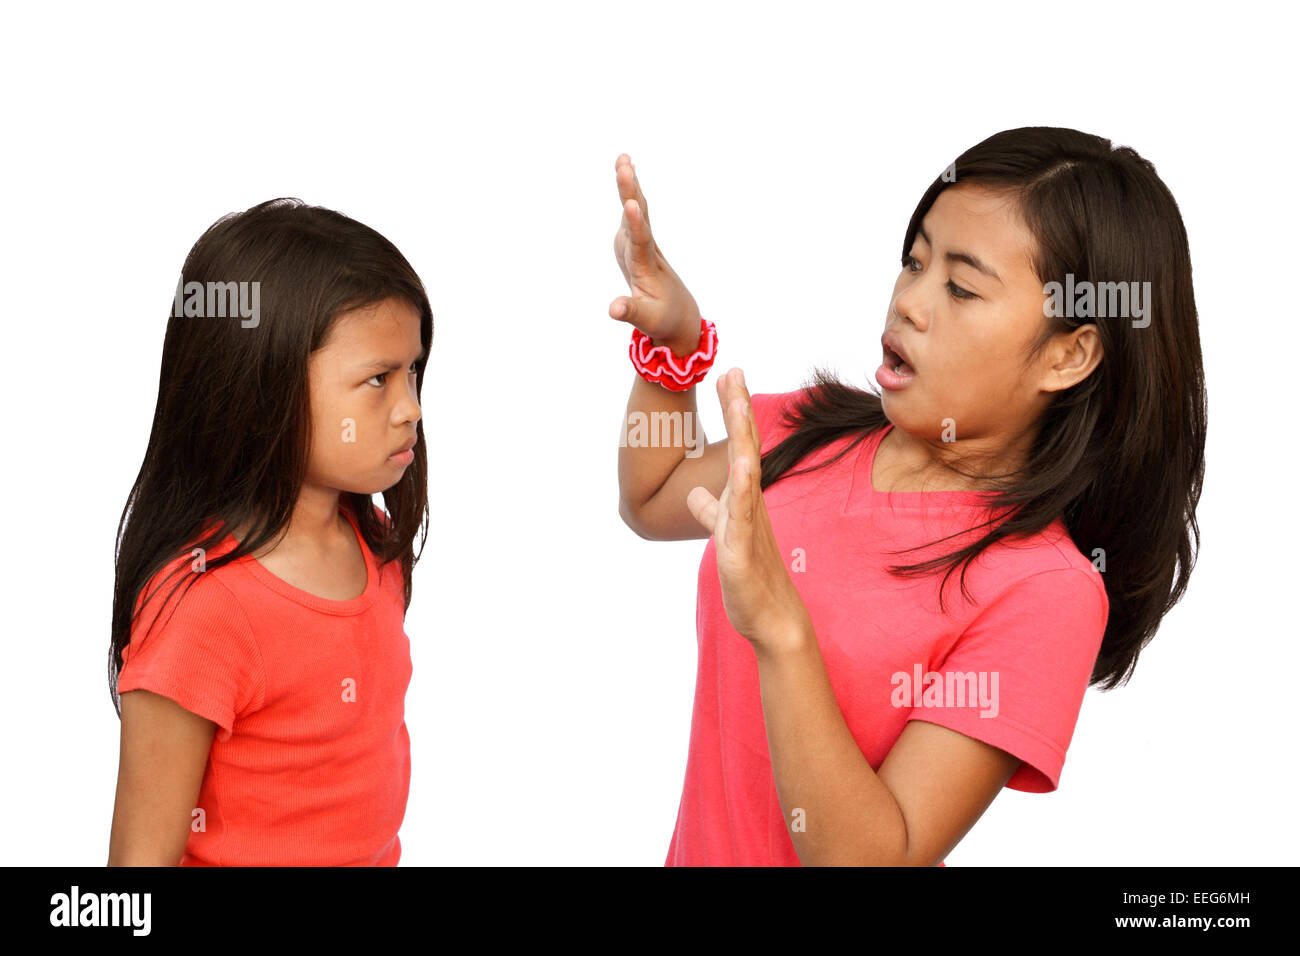 Teenager shocked by the angry reaction of her little sister - Stock Image